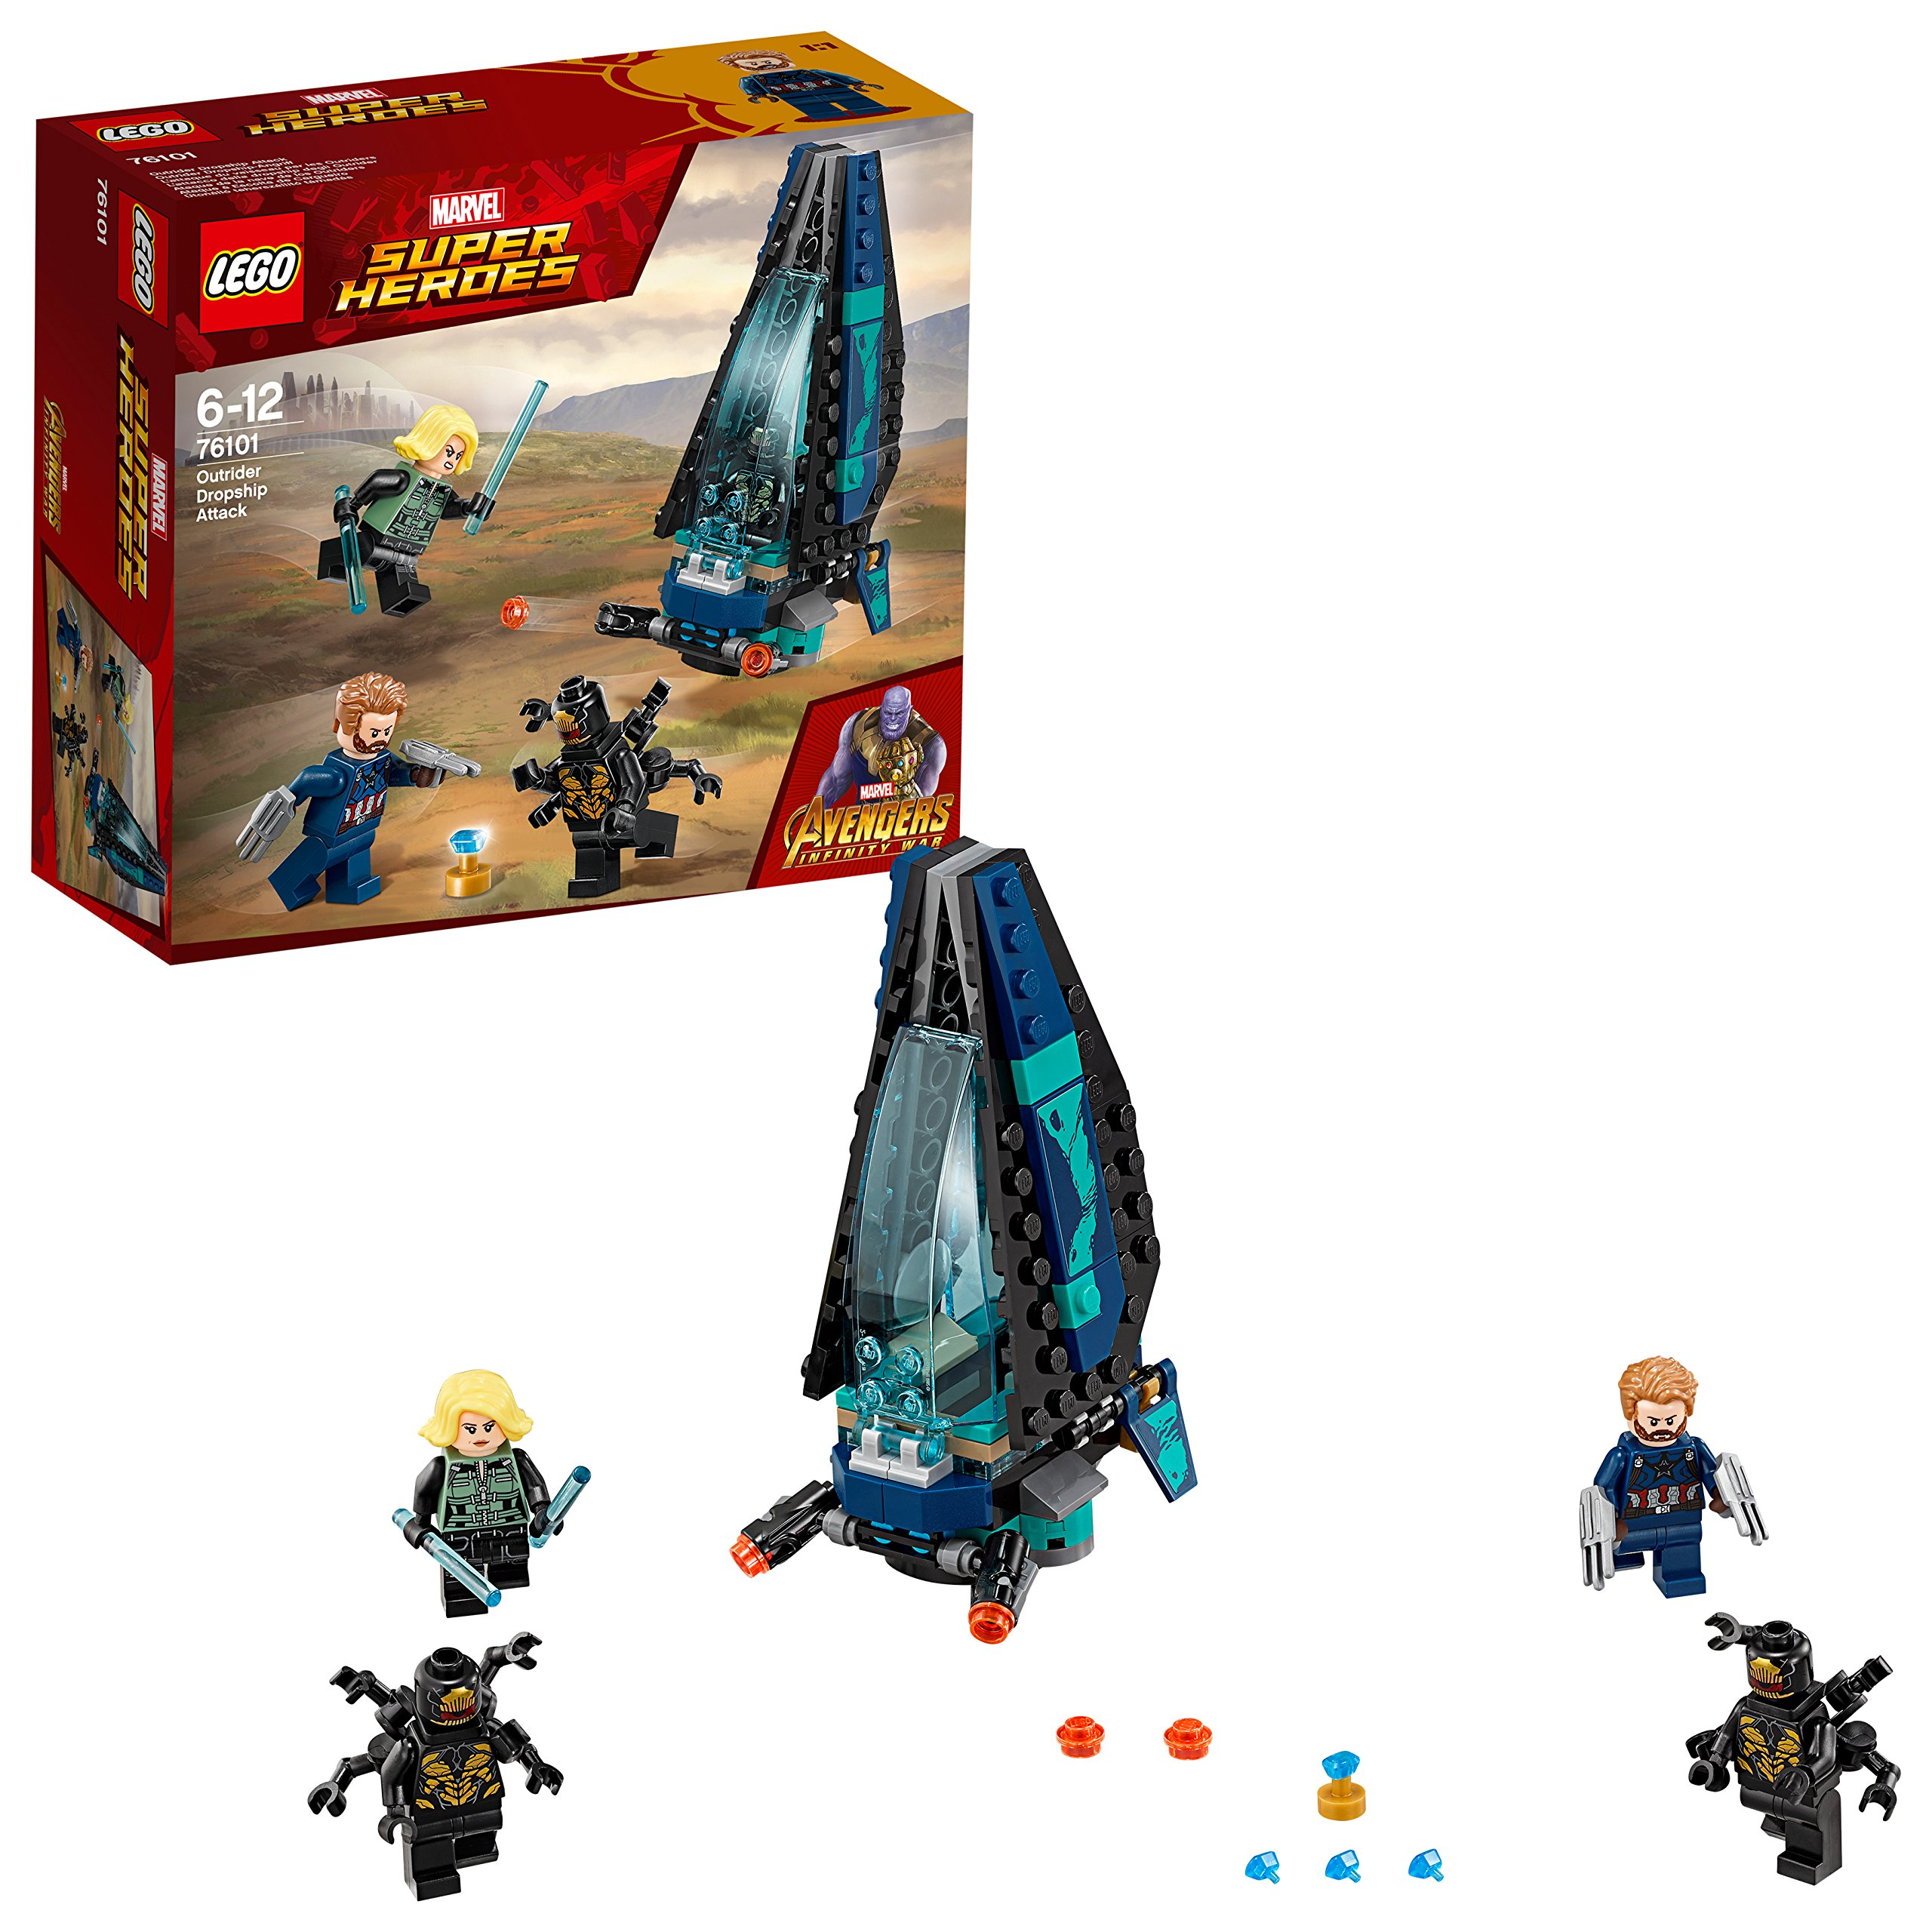 LEGO 76101 Outrider Dropship Attack Playset